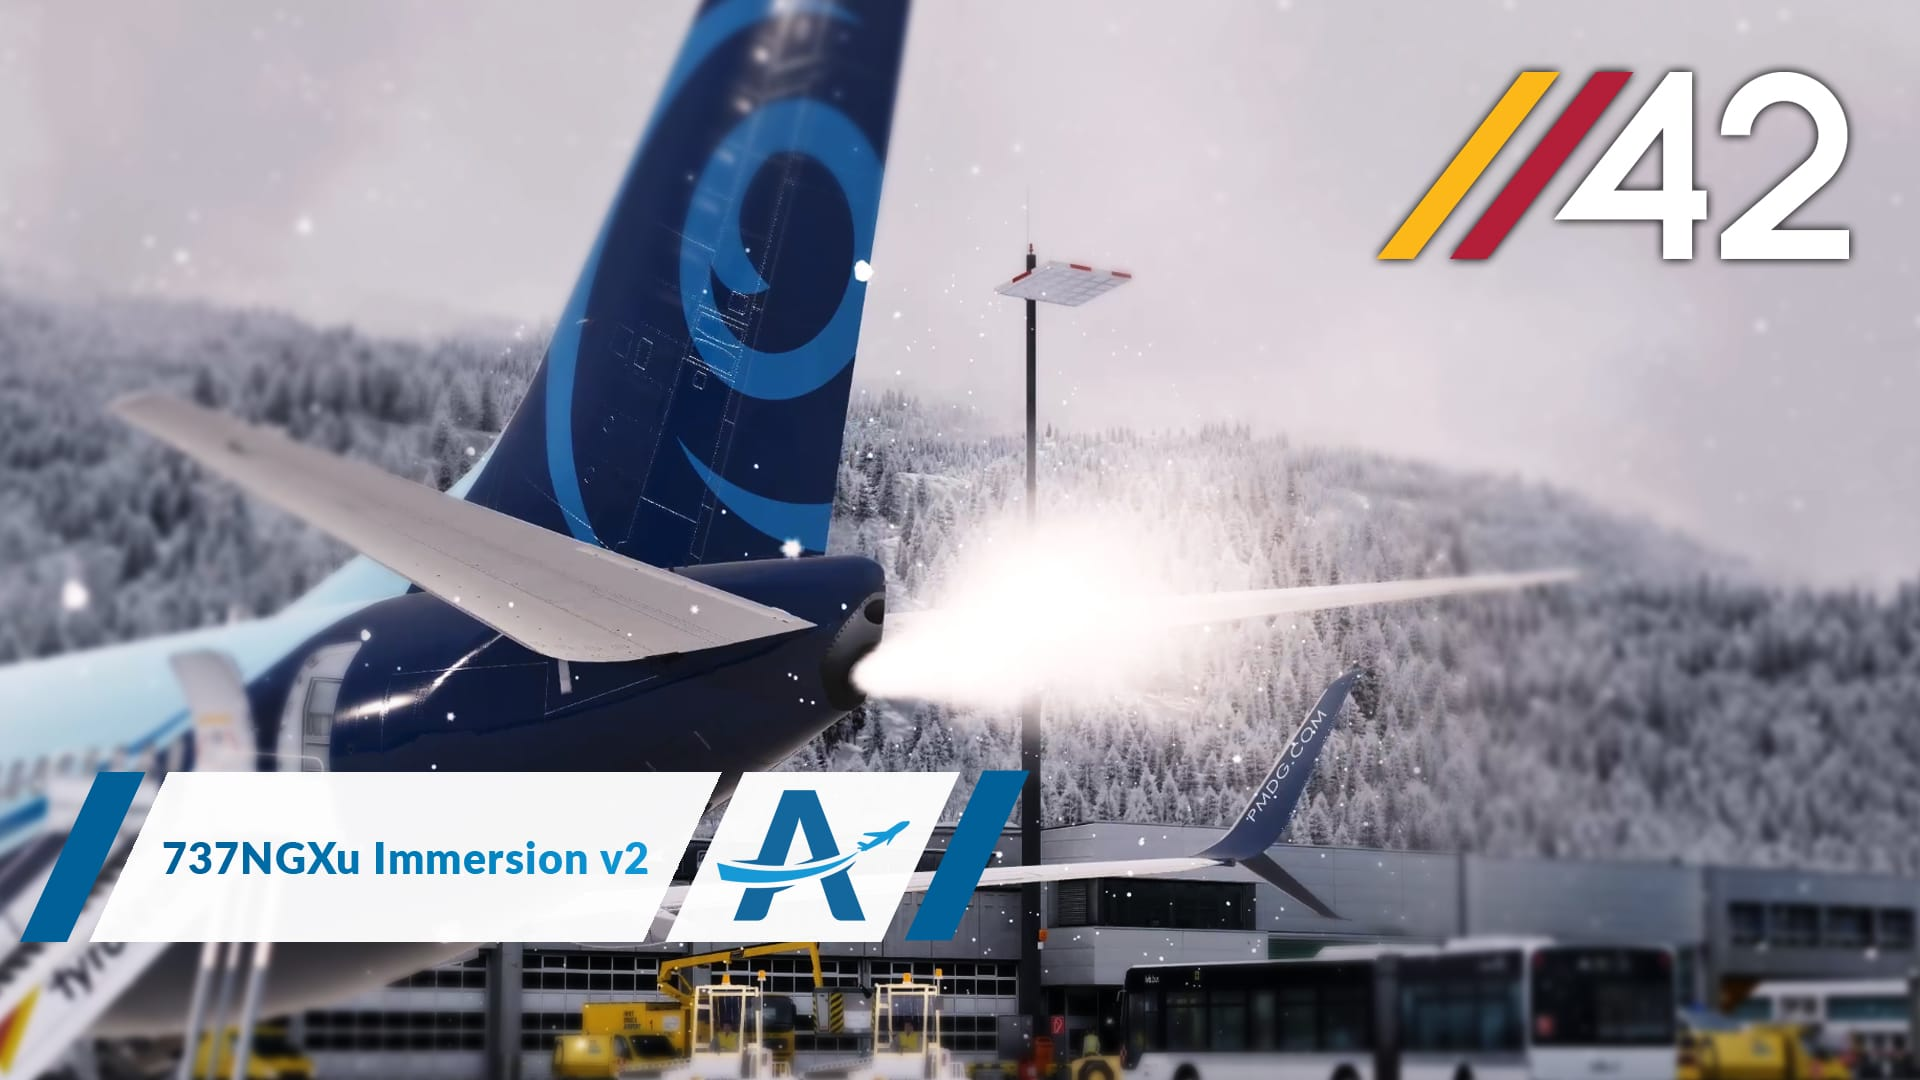 [TRAILER] Parallel 42 – 737 Immersion v2